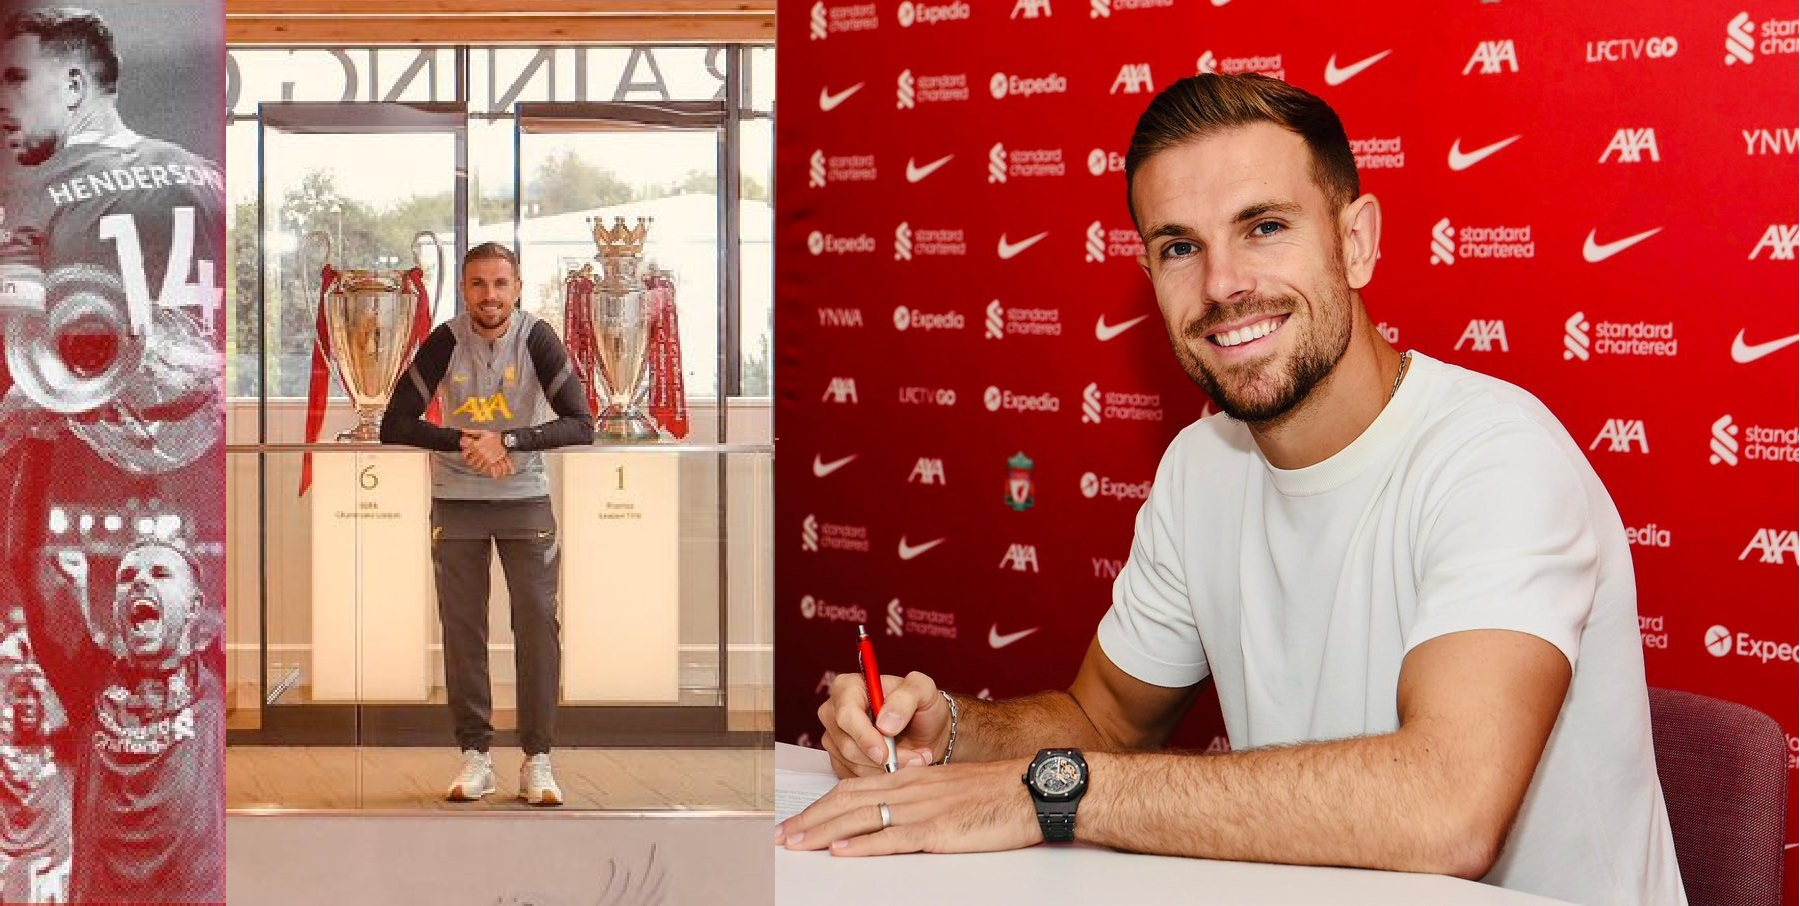 Details emerge as Liverpool confirm new contract for Jordan Henderson